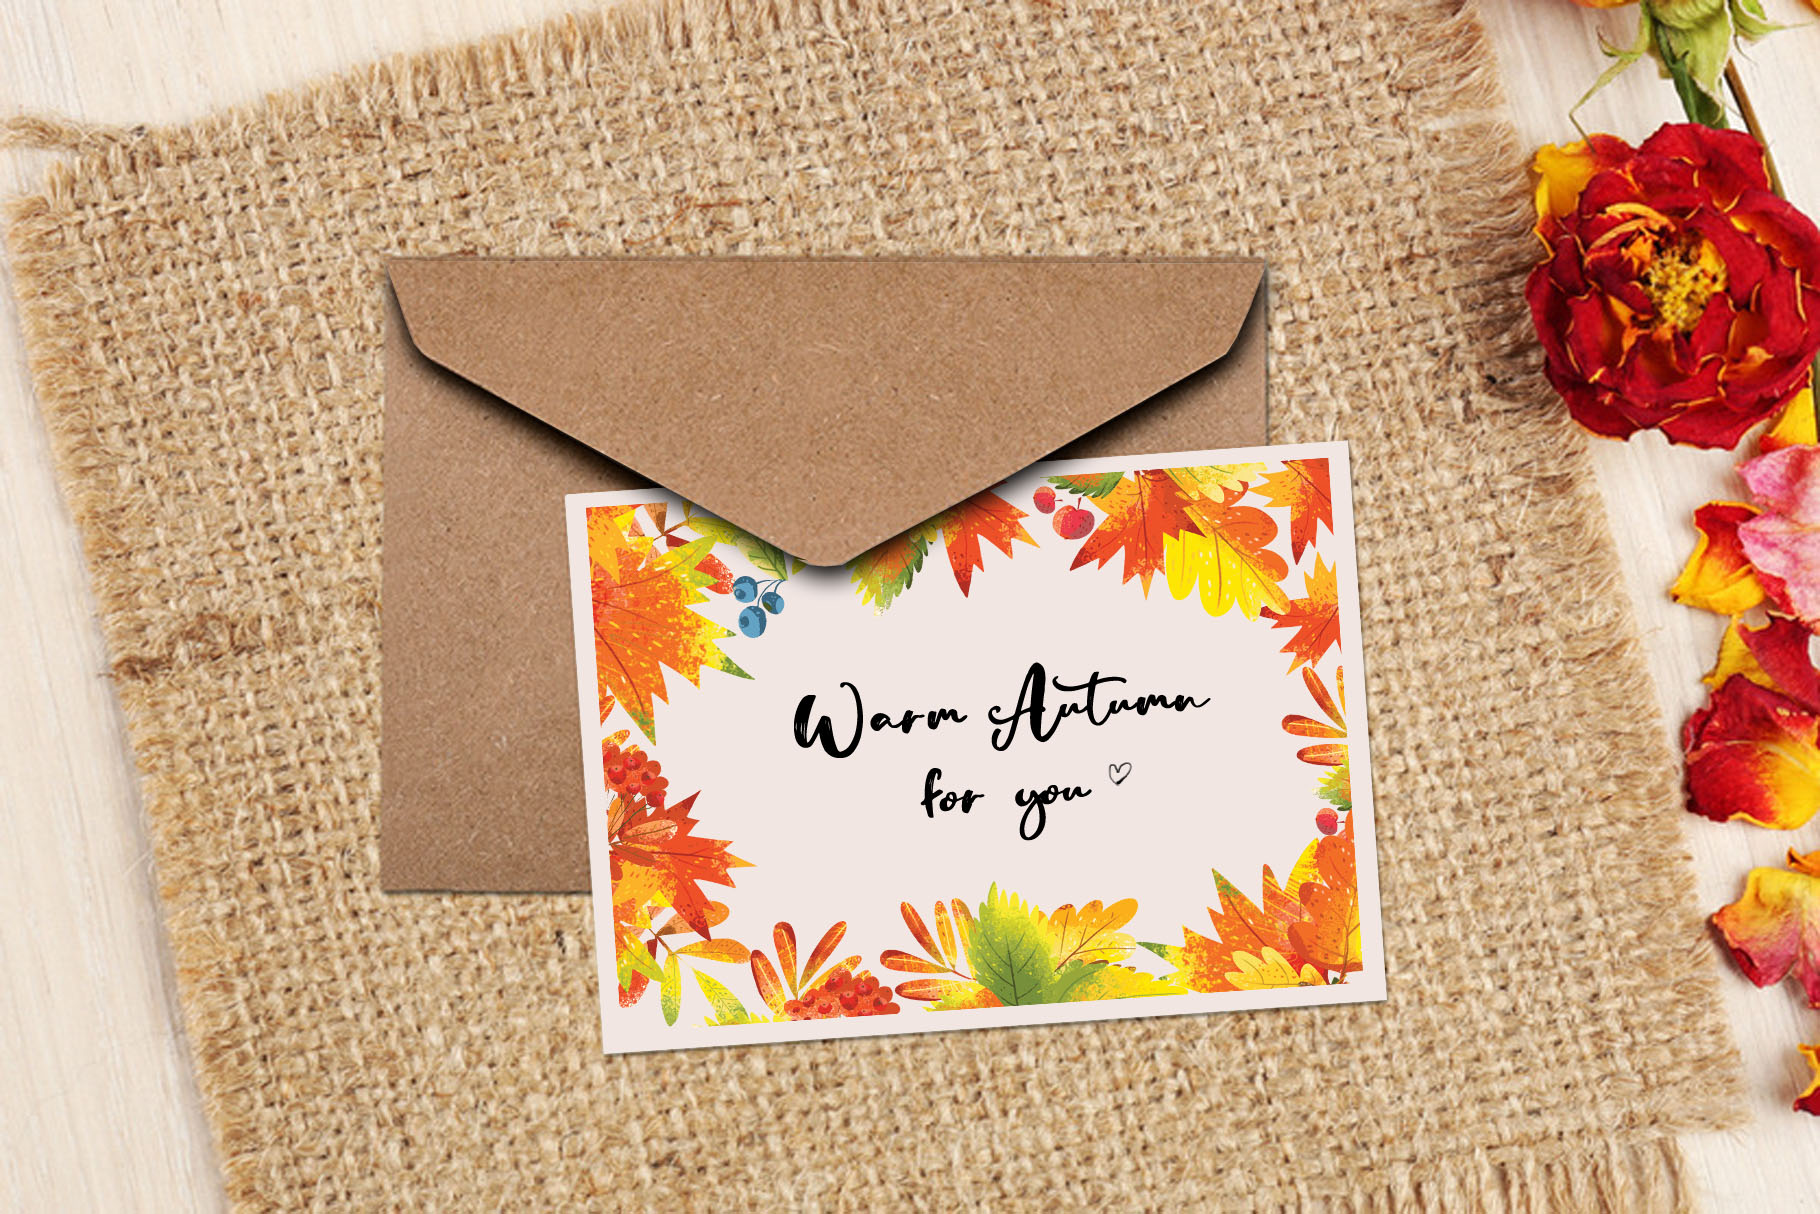 Autumn Leaves - over 30 objects, frames, patterns example image 10